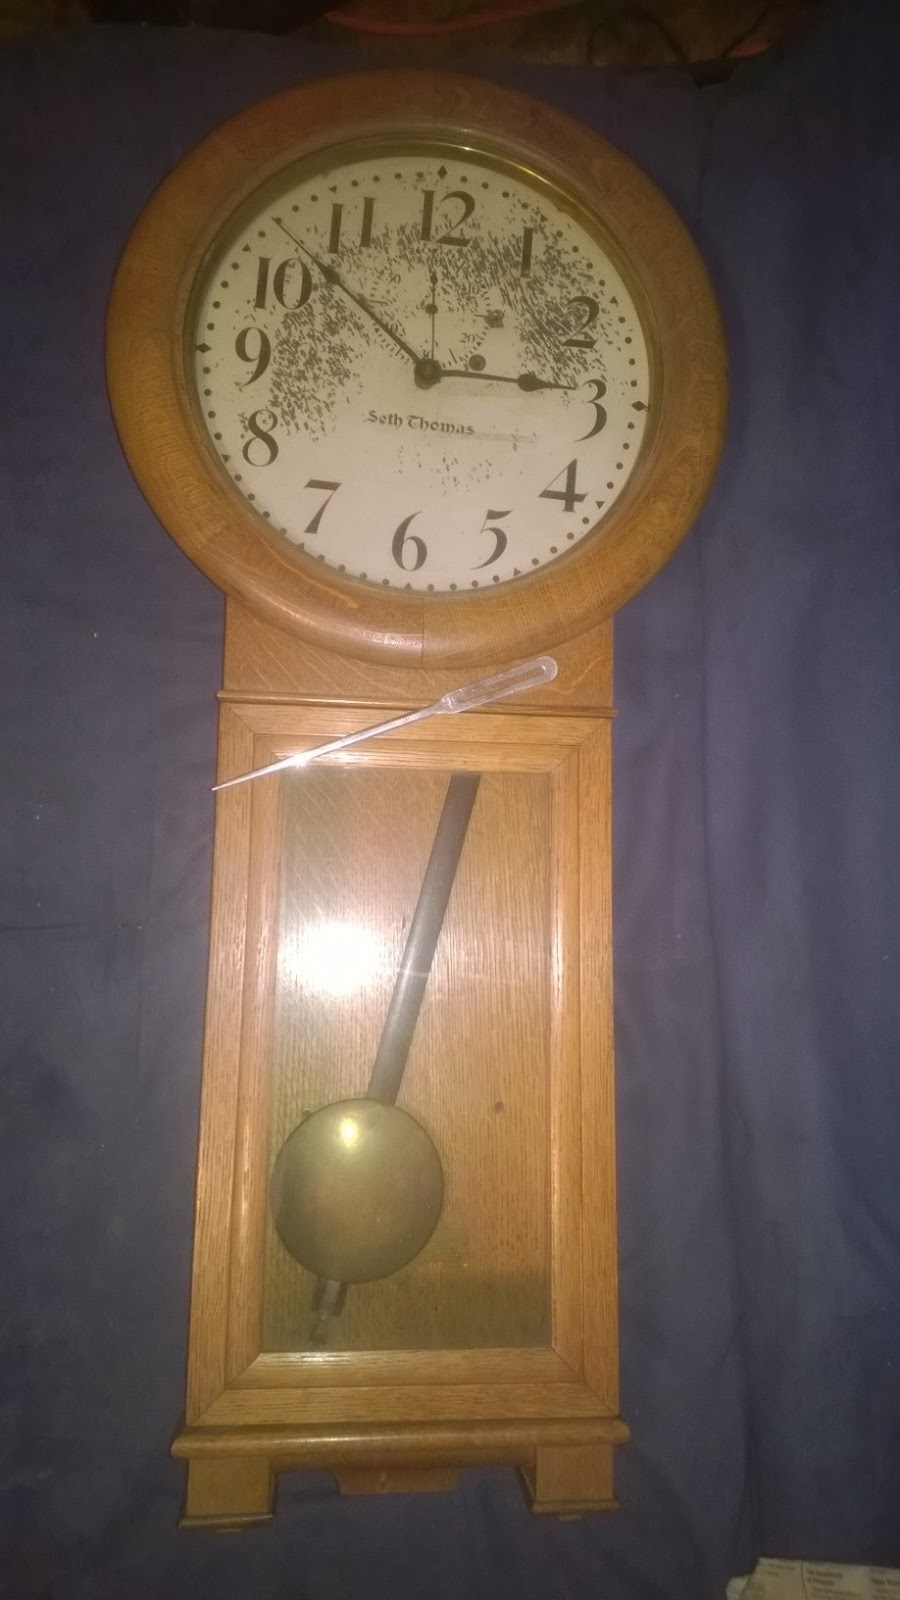 Mikes clock repair suspension spring was broken pivot holes were warn broken weight cable and the pendulum bob needed a little polish the clock was missing the weight amipublicfo Images